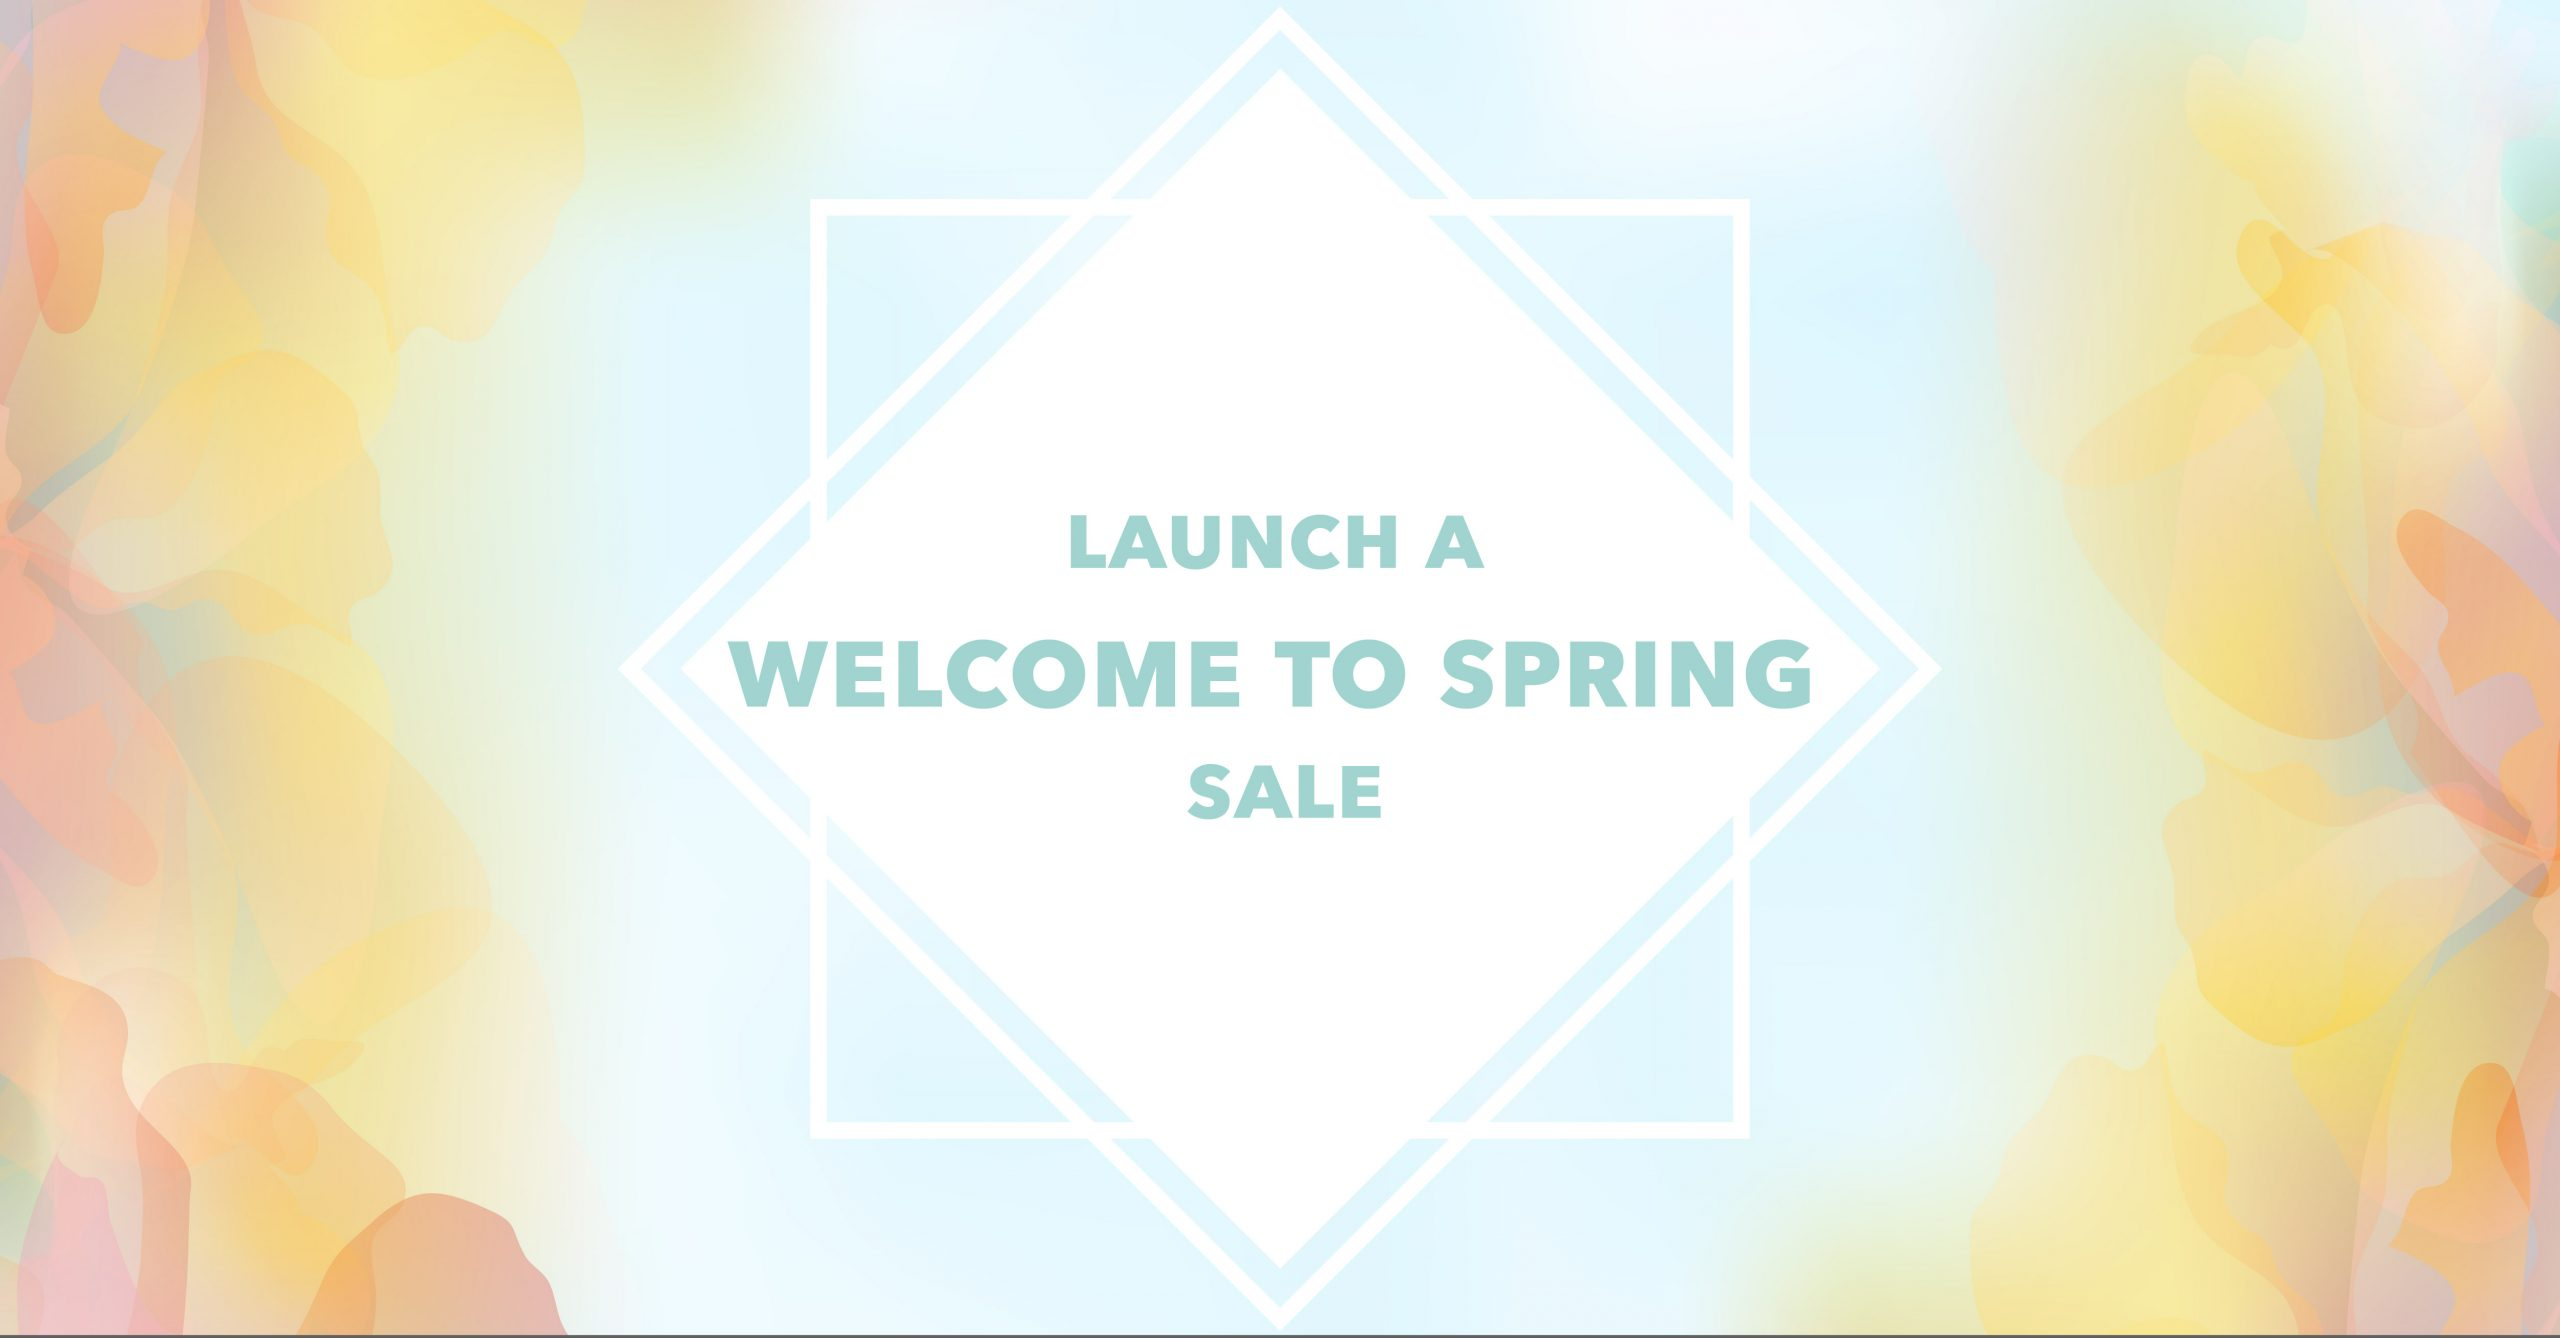 Ideas For Launching A Welcome To Spring Sale 01